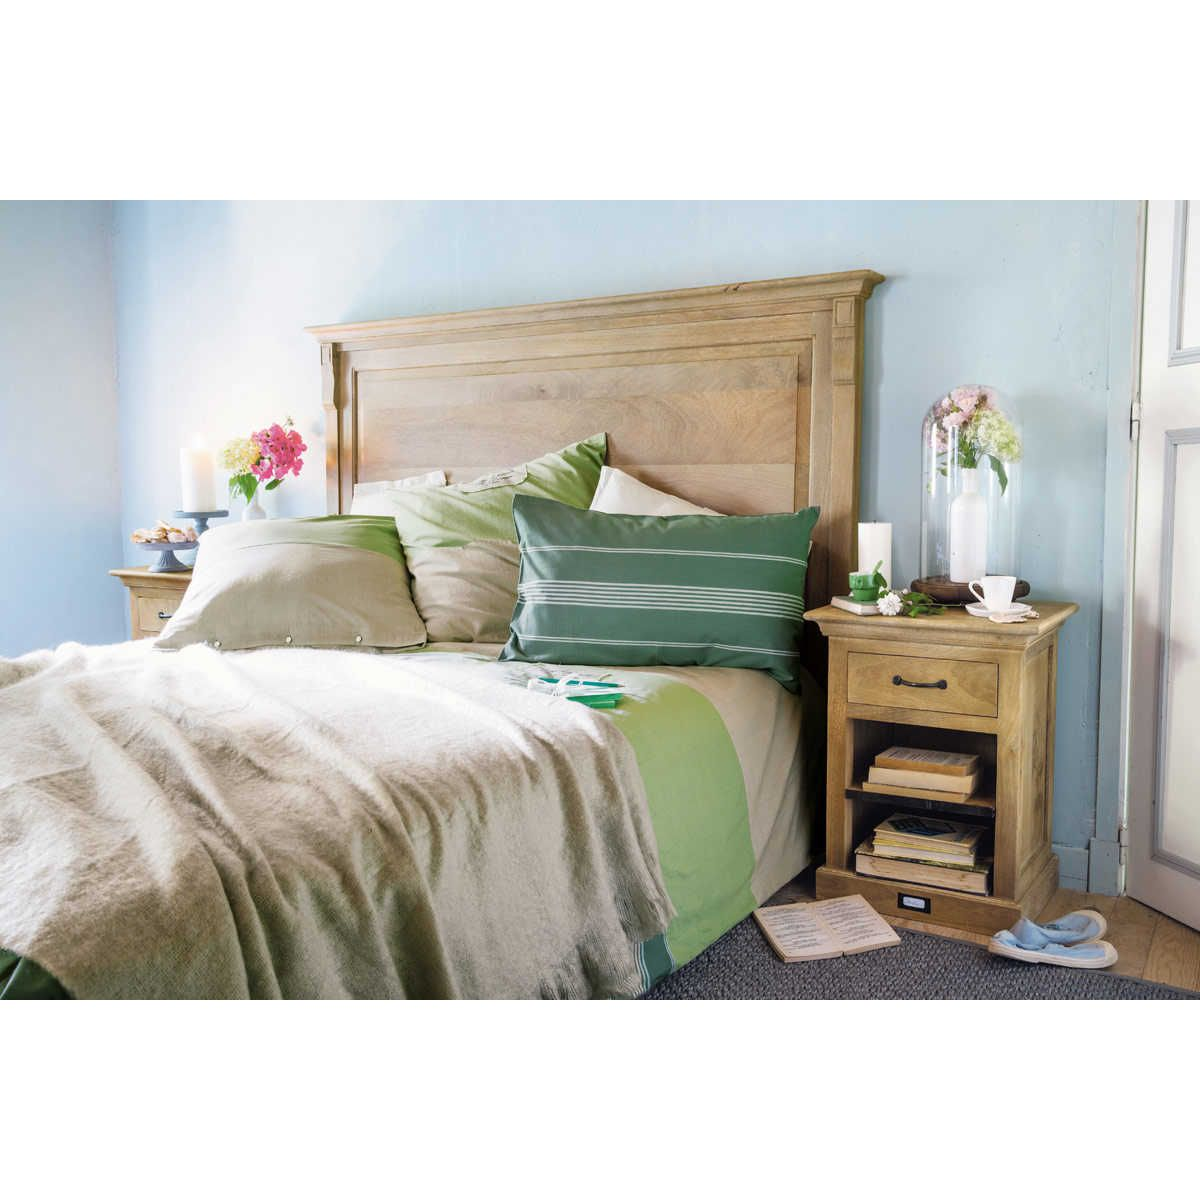 Letti, comodini e testate Wood headboard, Affordable